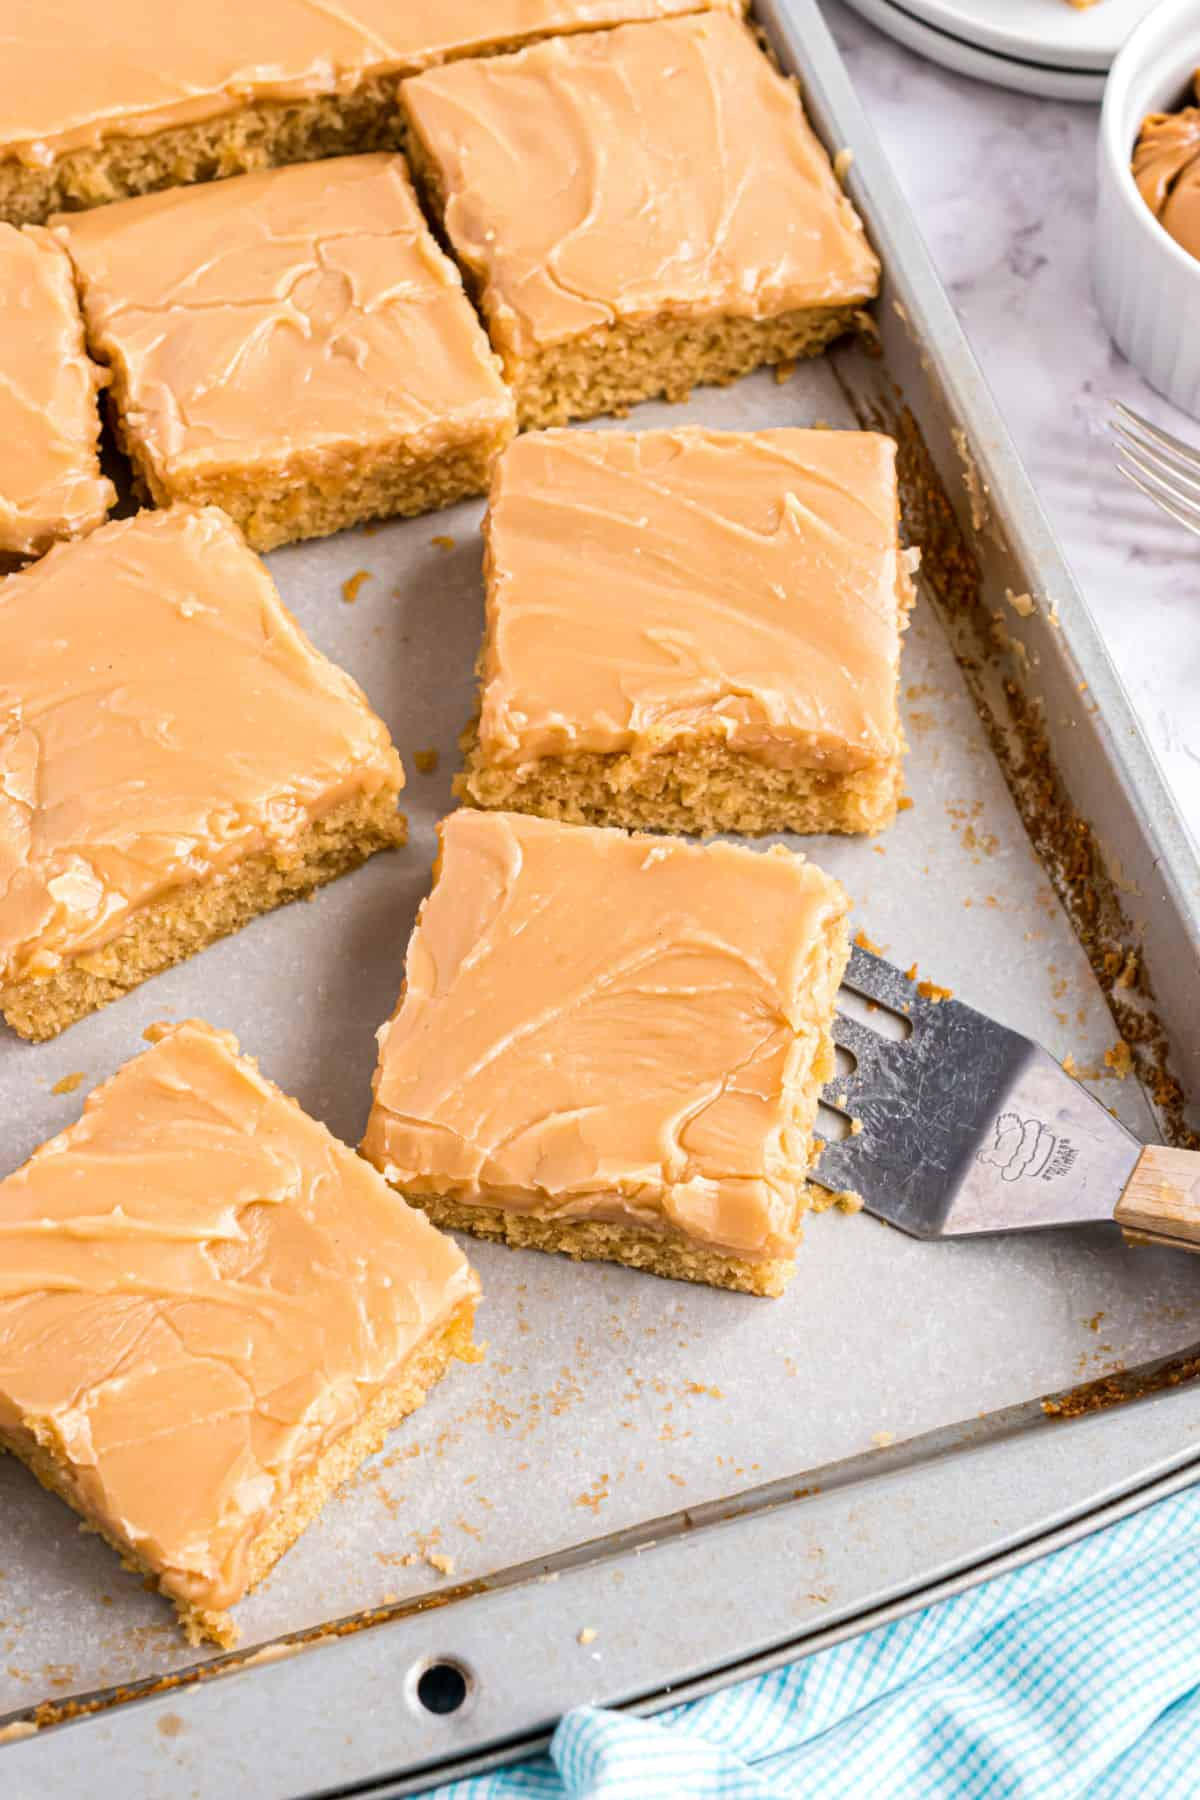 Peanut butter sheet cake sliced into squares on a baking sheet.